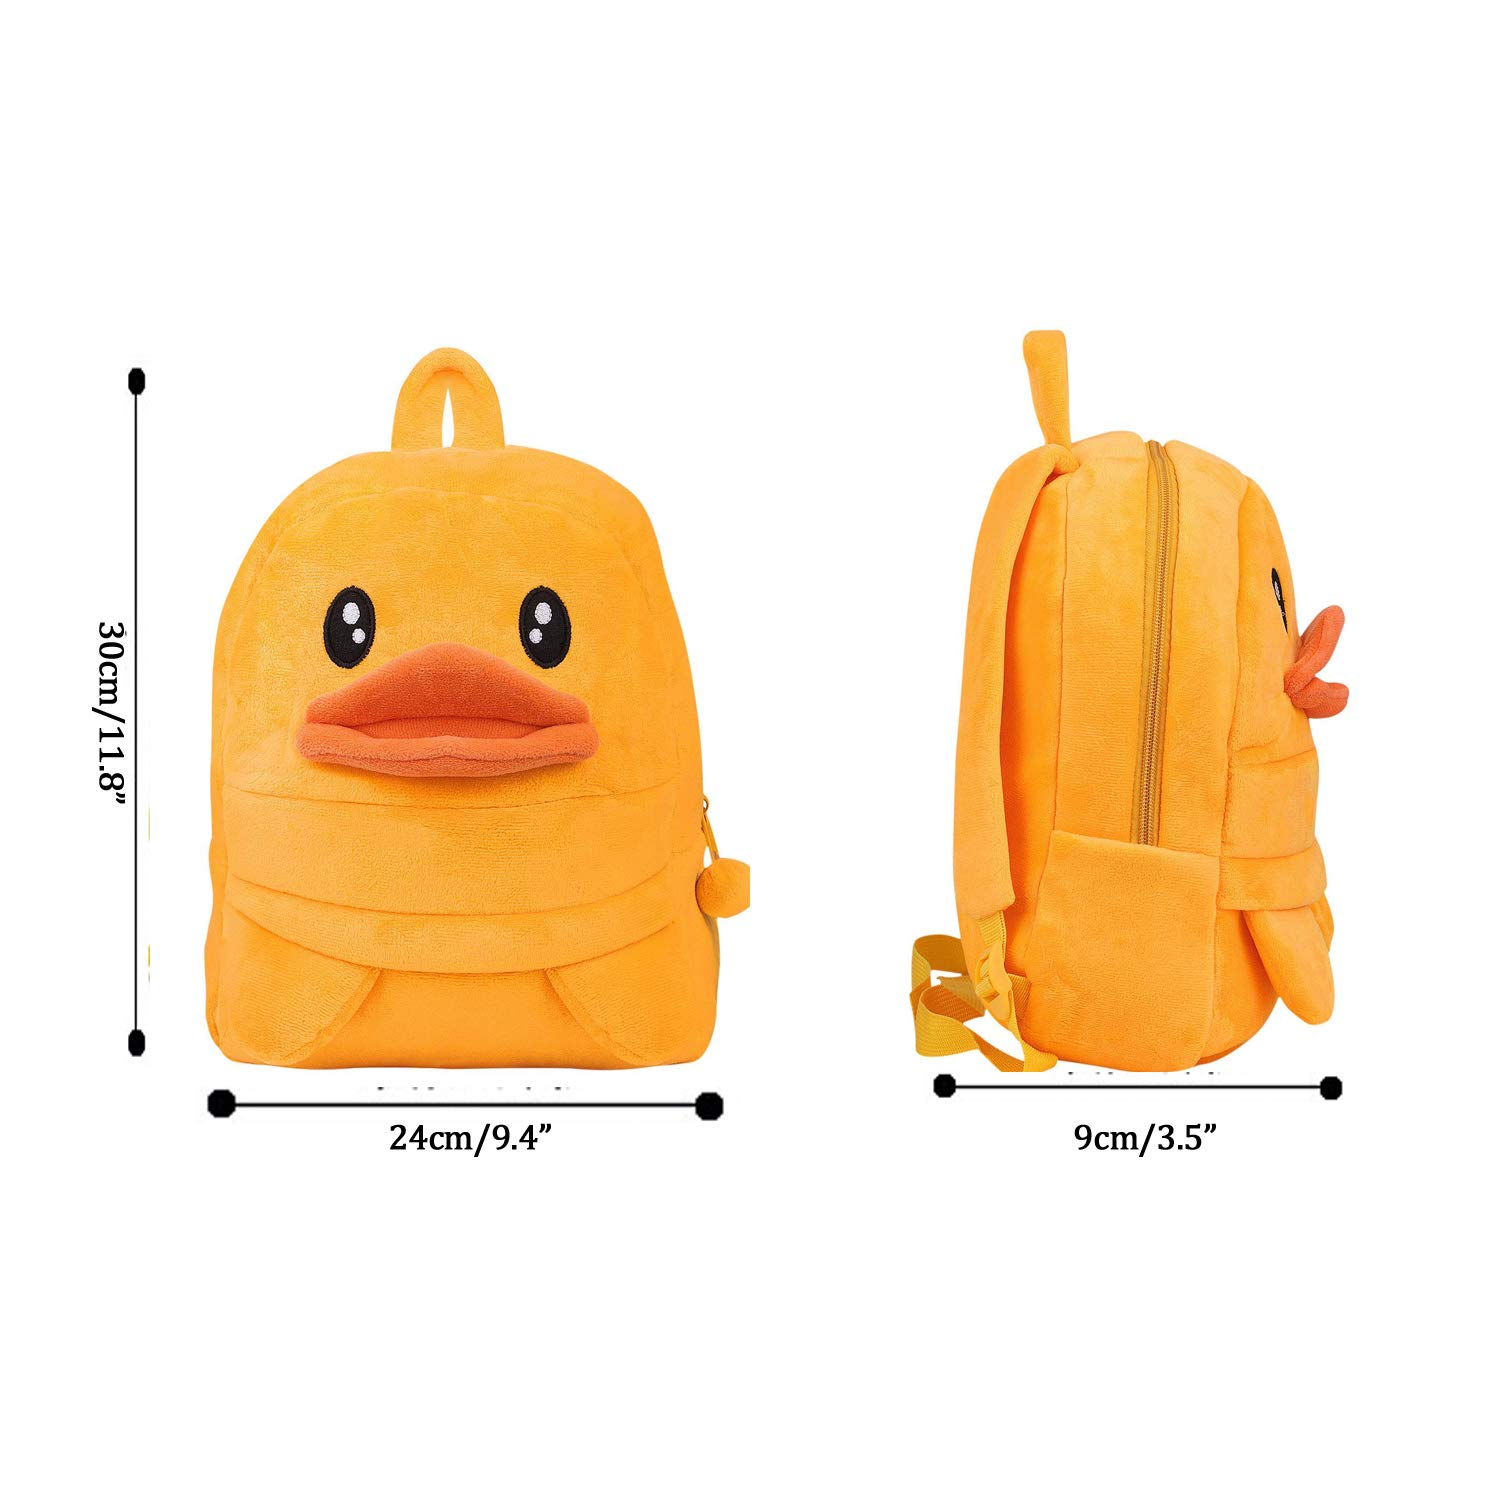 0412f2f33f Toddler Baby Yellow Duck Backpack Kids Cute Animal Cartoon Kindergarten  Schoolbag Mini Travel Bag Rucksack Strap Shoulder Bag for Boys Girls Ages 3  to 4  ...